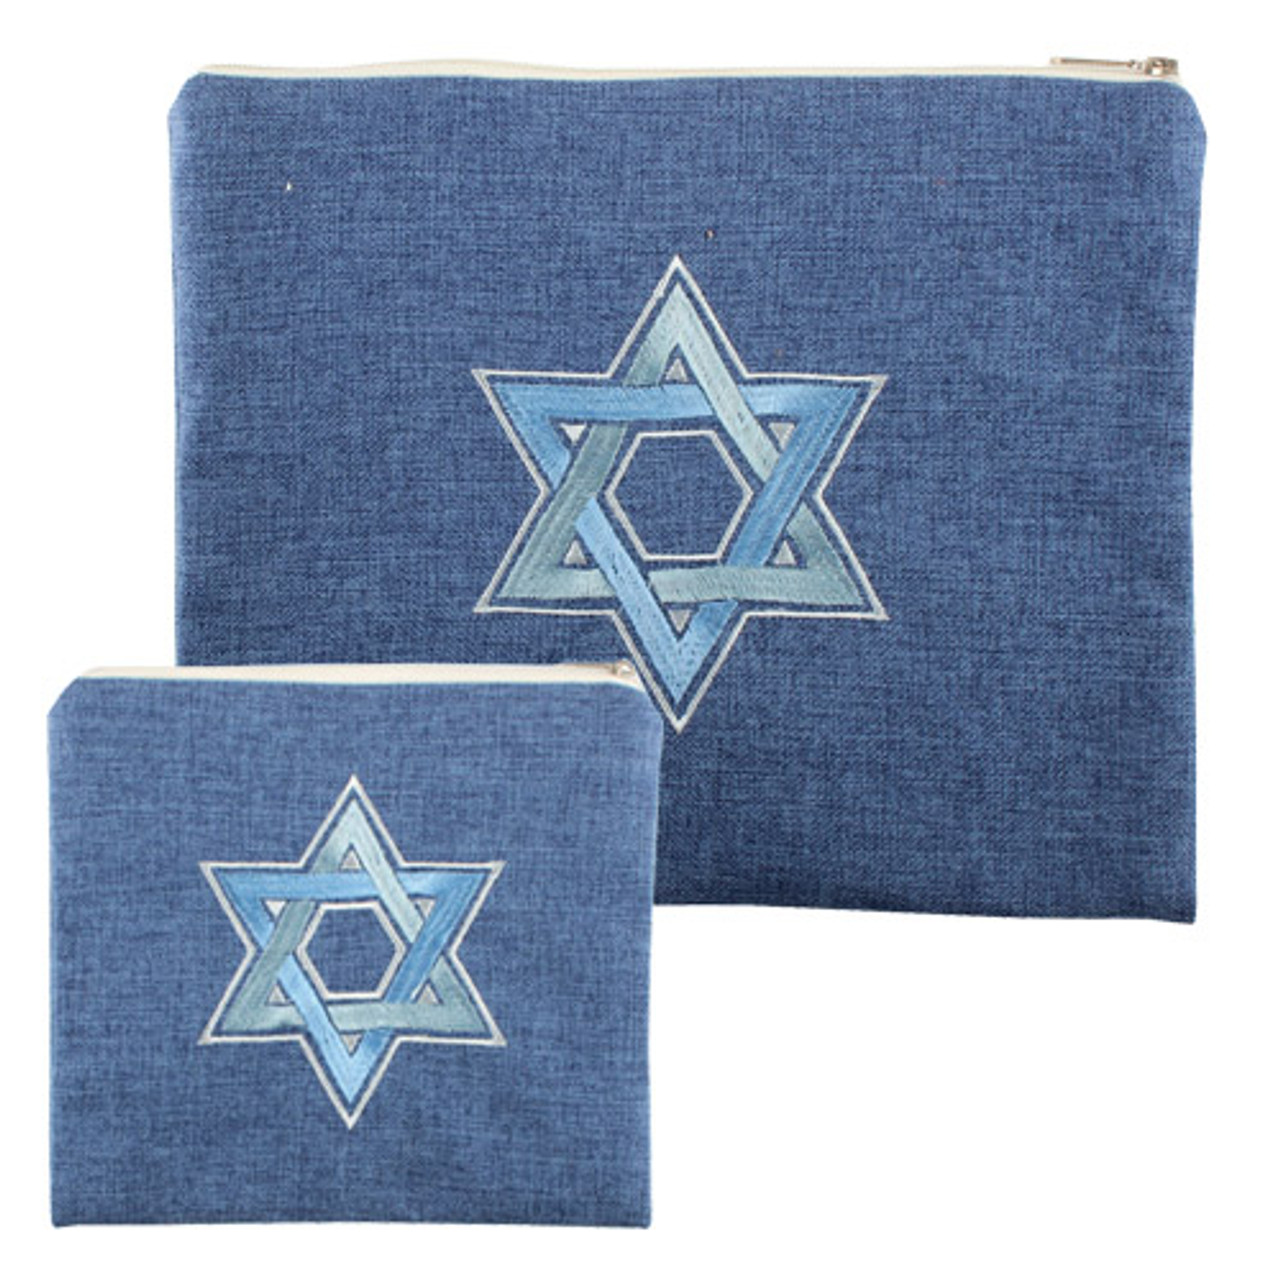 Blue Linen Tallit Bag with embroidered Magen David